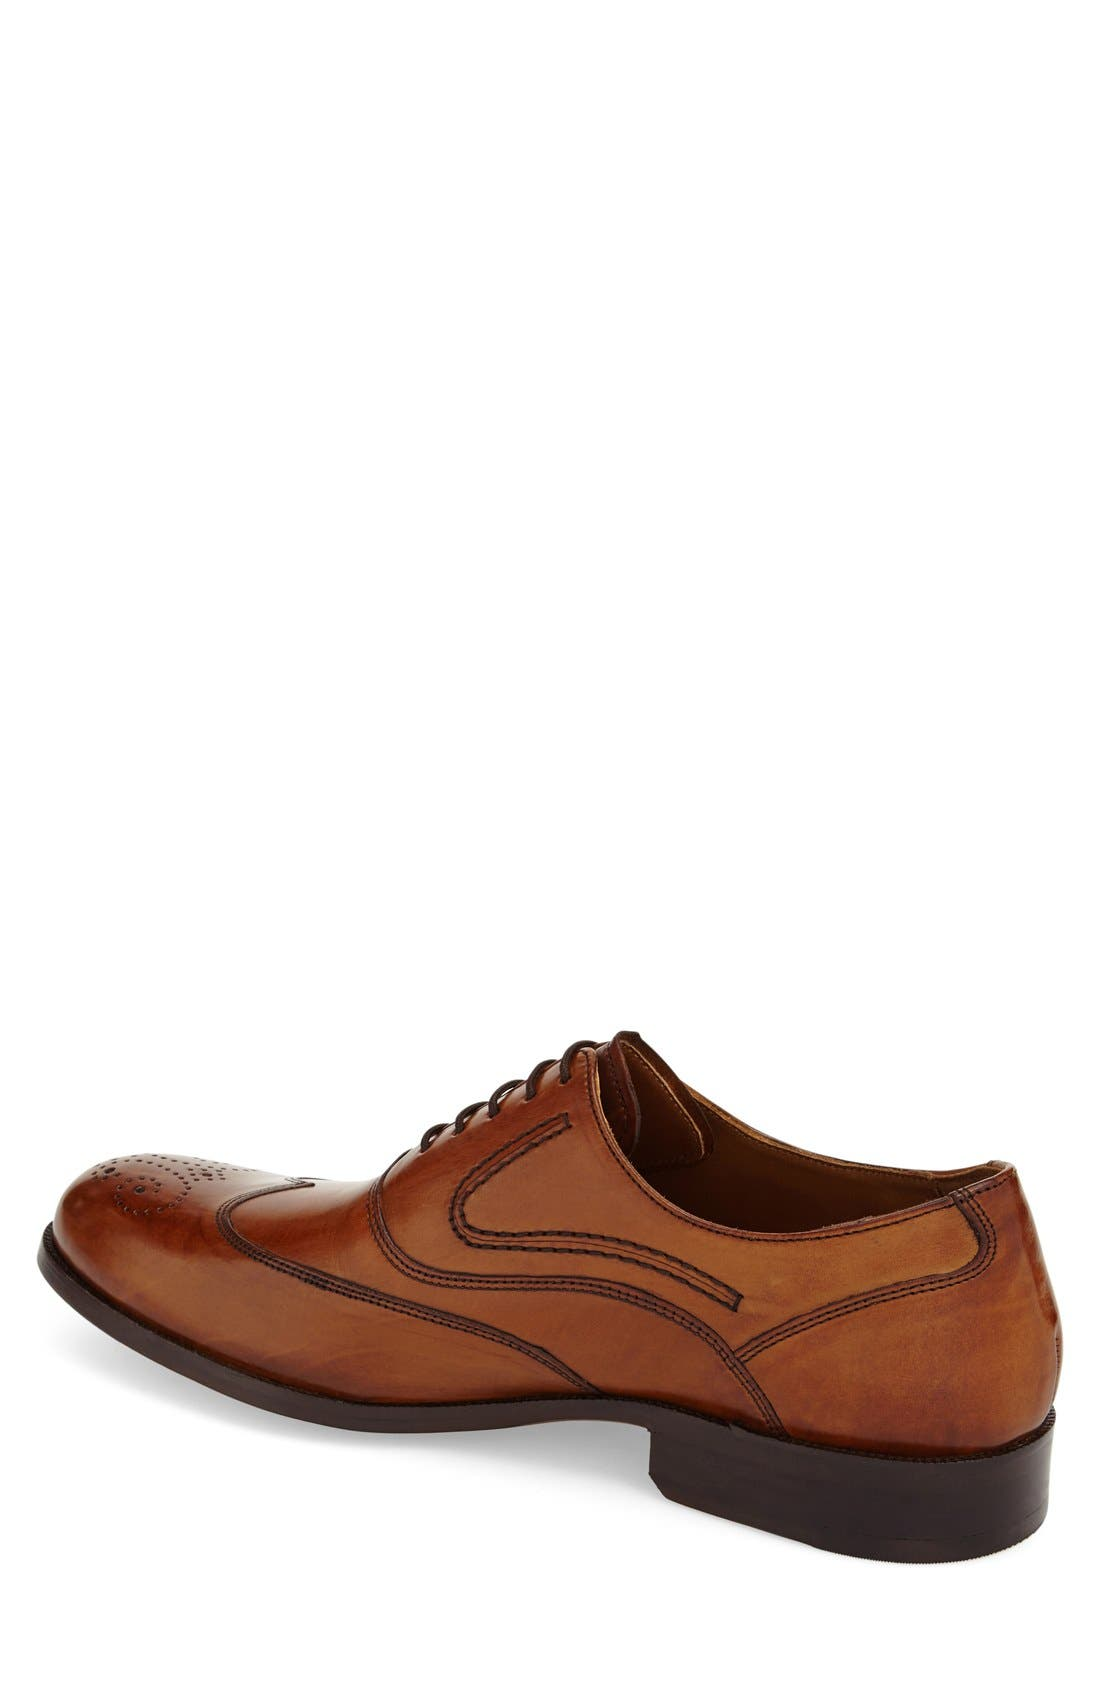 Alternate Image 2  - Johnston & Murphy 'Stratton' Wingtip Oxford (Men)